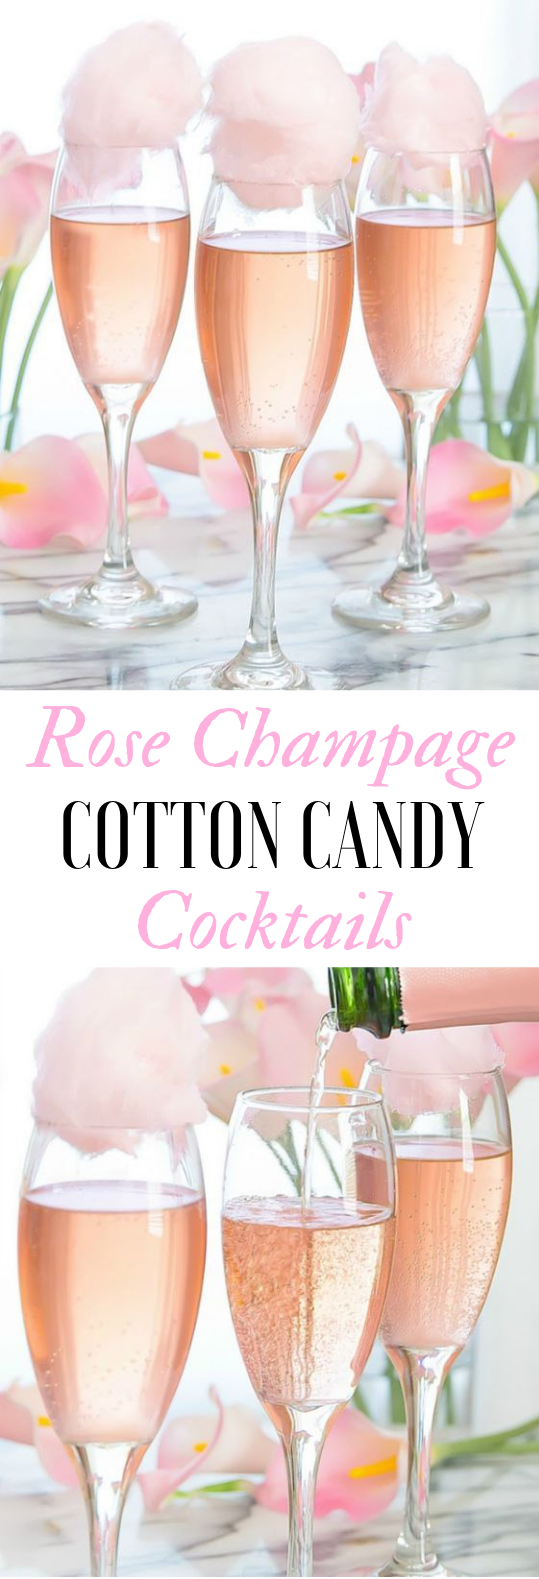 COTTON CANDY CHAMPAGNE COCKTAILS #Cocktail #Drinks #cocktaildrinks